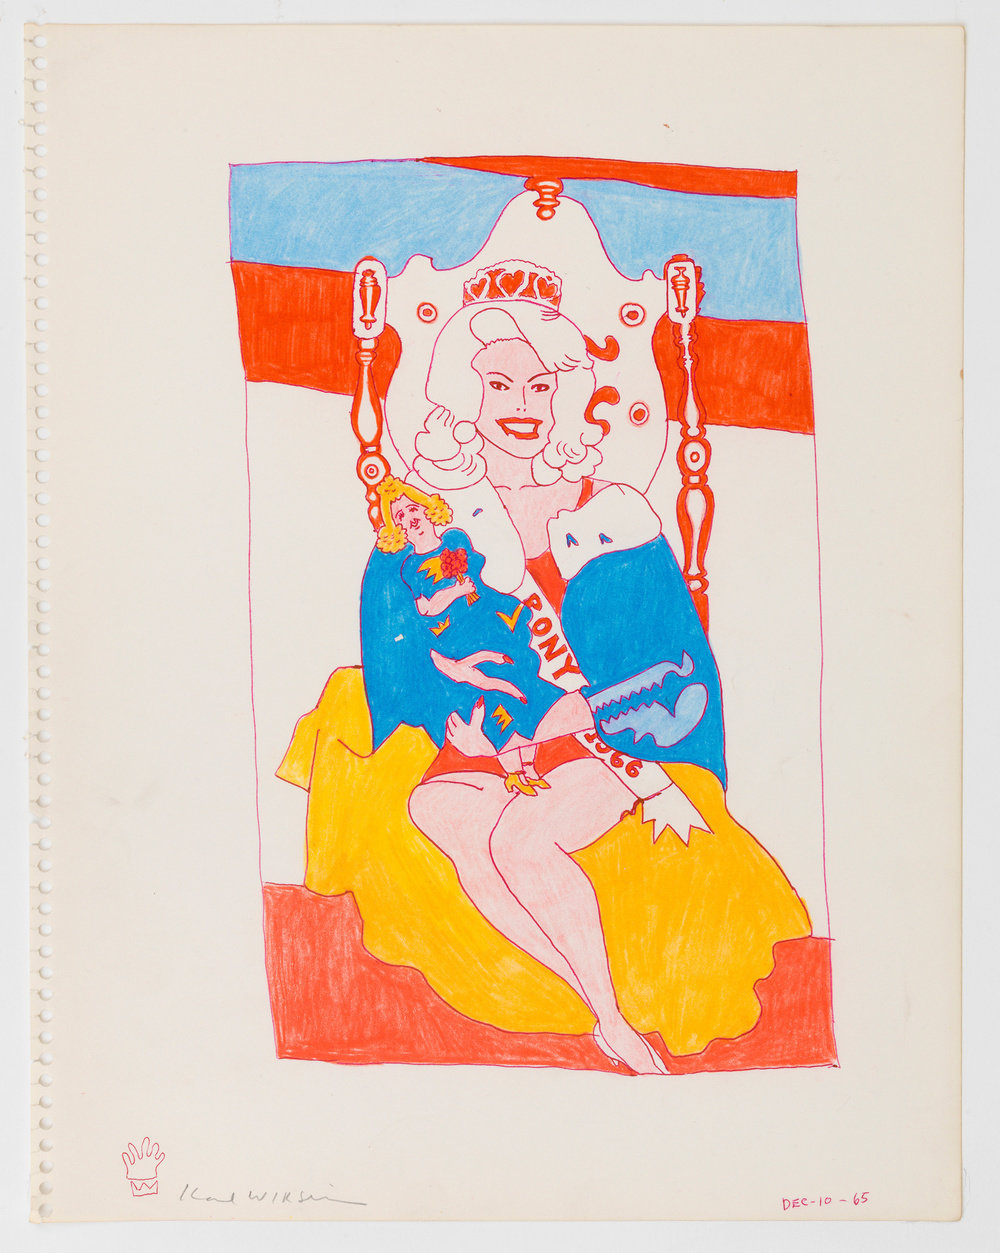 A color ink on paper drawing by Karl Wirsum of a smiling, female figure, seated on a throne wearing a sash and crown and holding a doll.